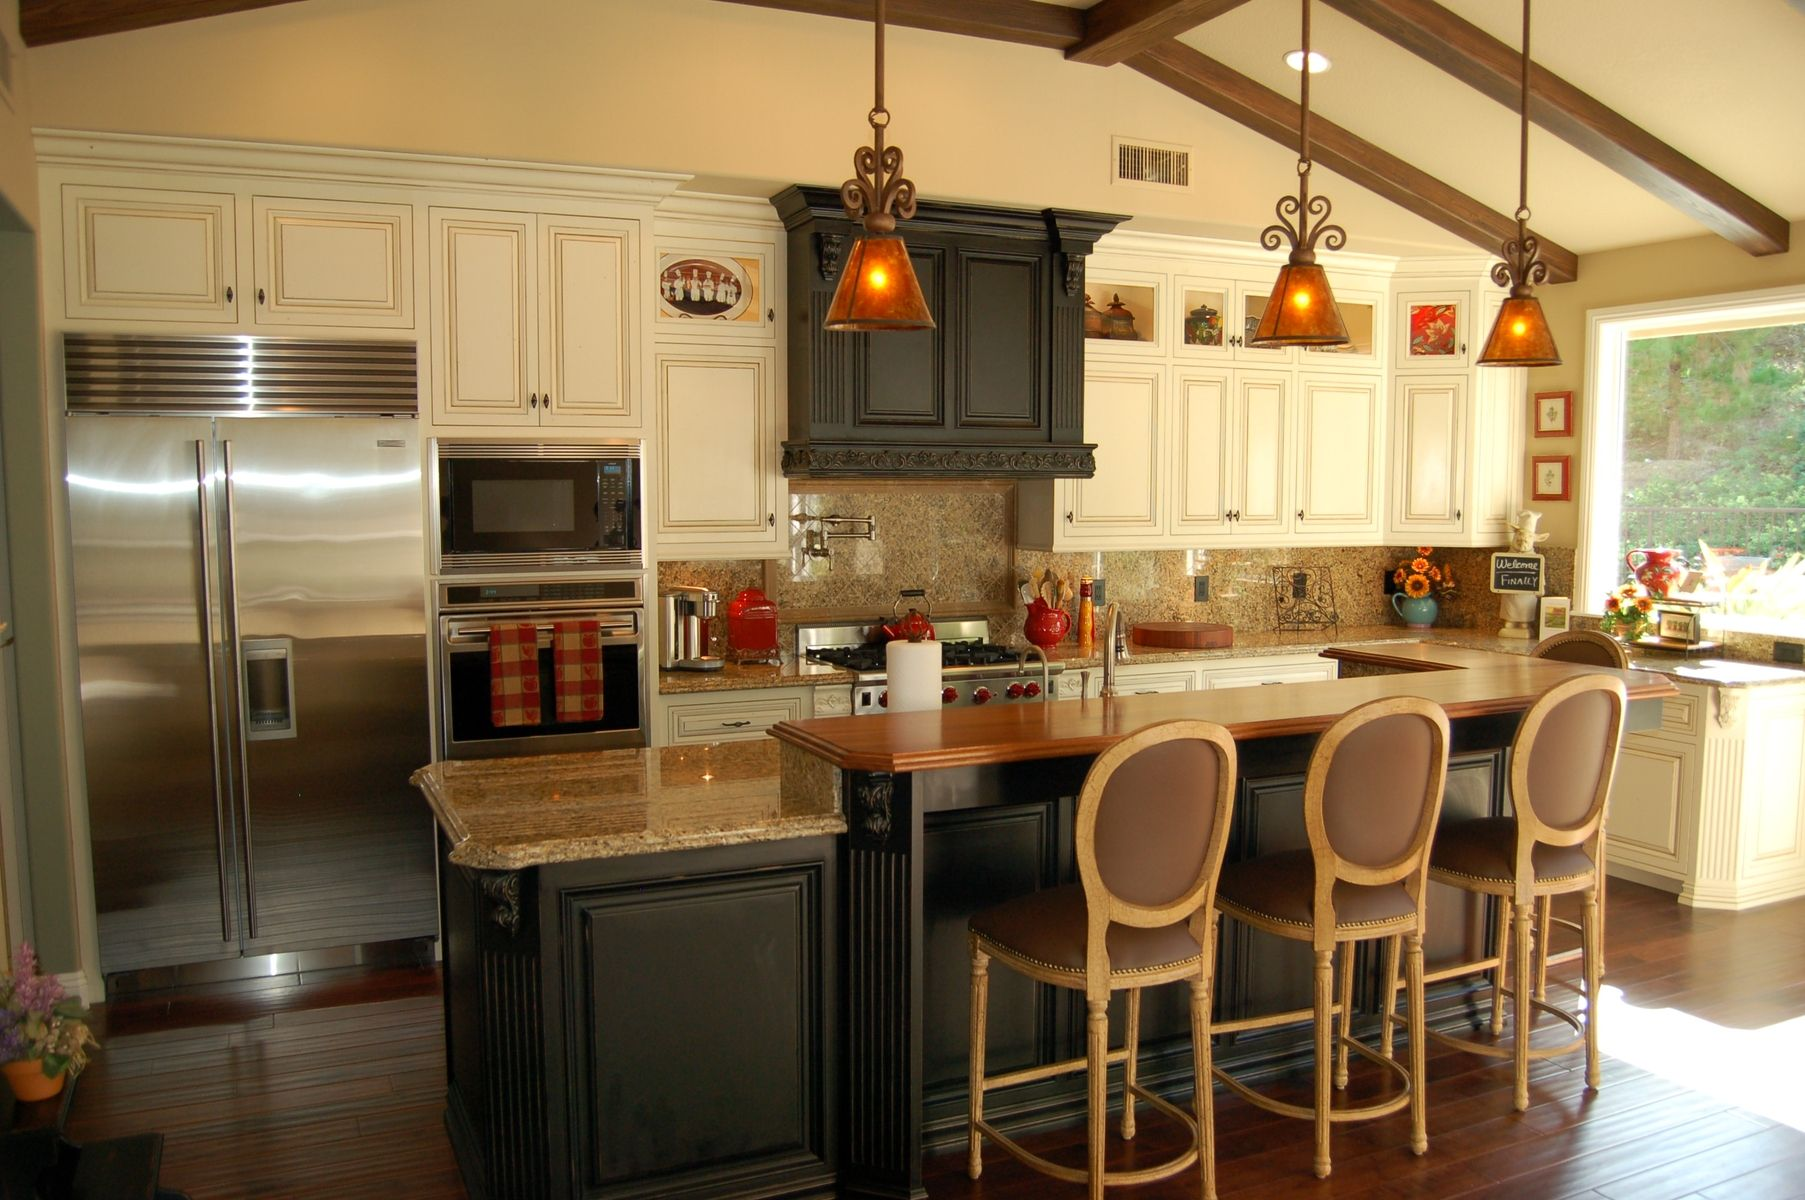 Remodeling Kitchen Island Kitchen Remodel In High PointKitchen - Kitchen island decor ideas